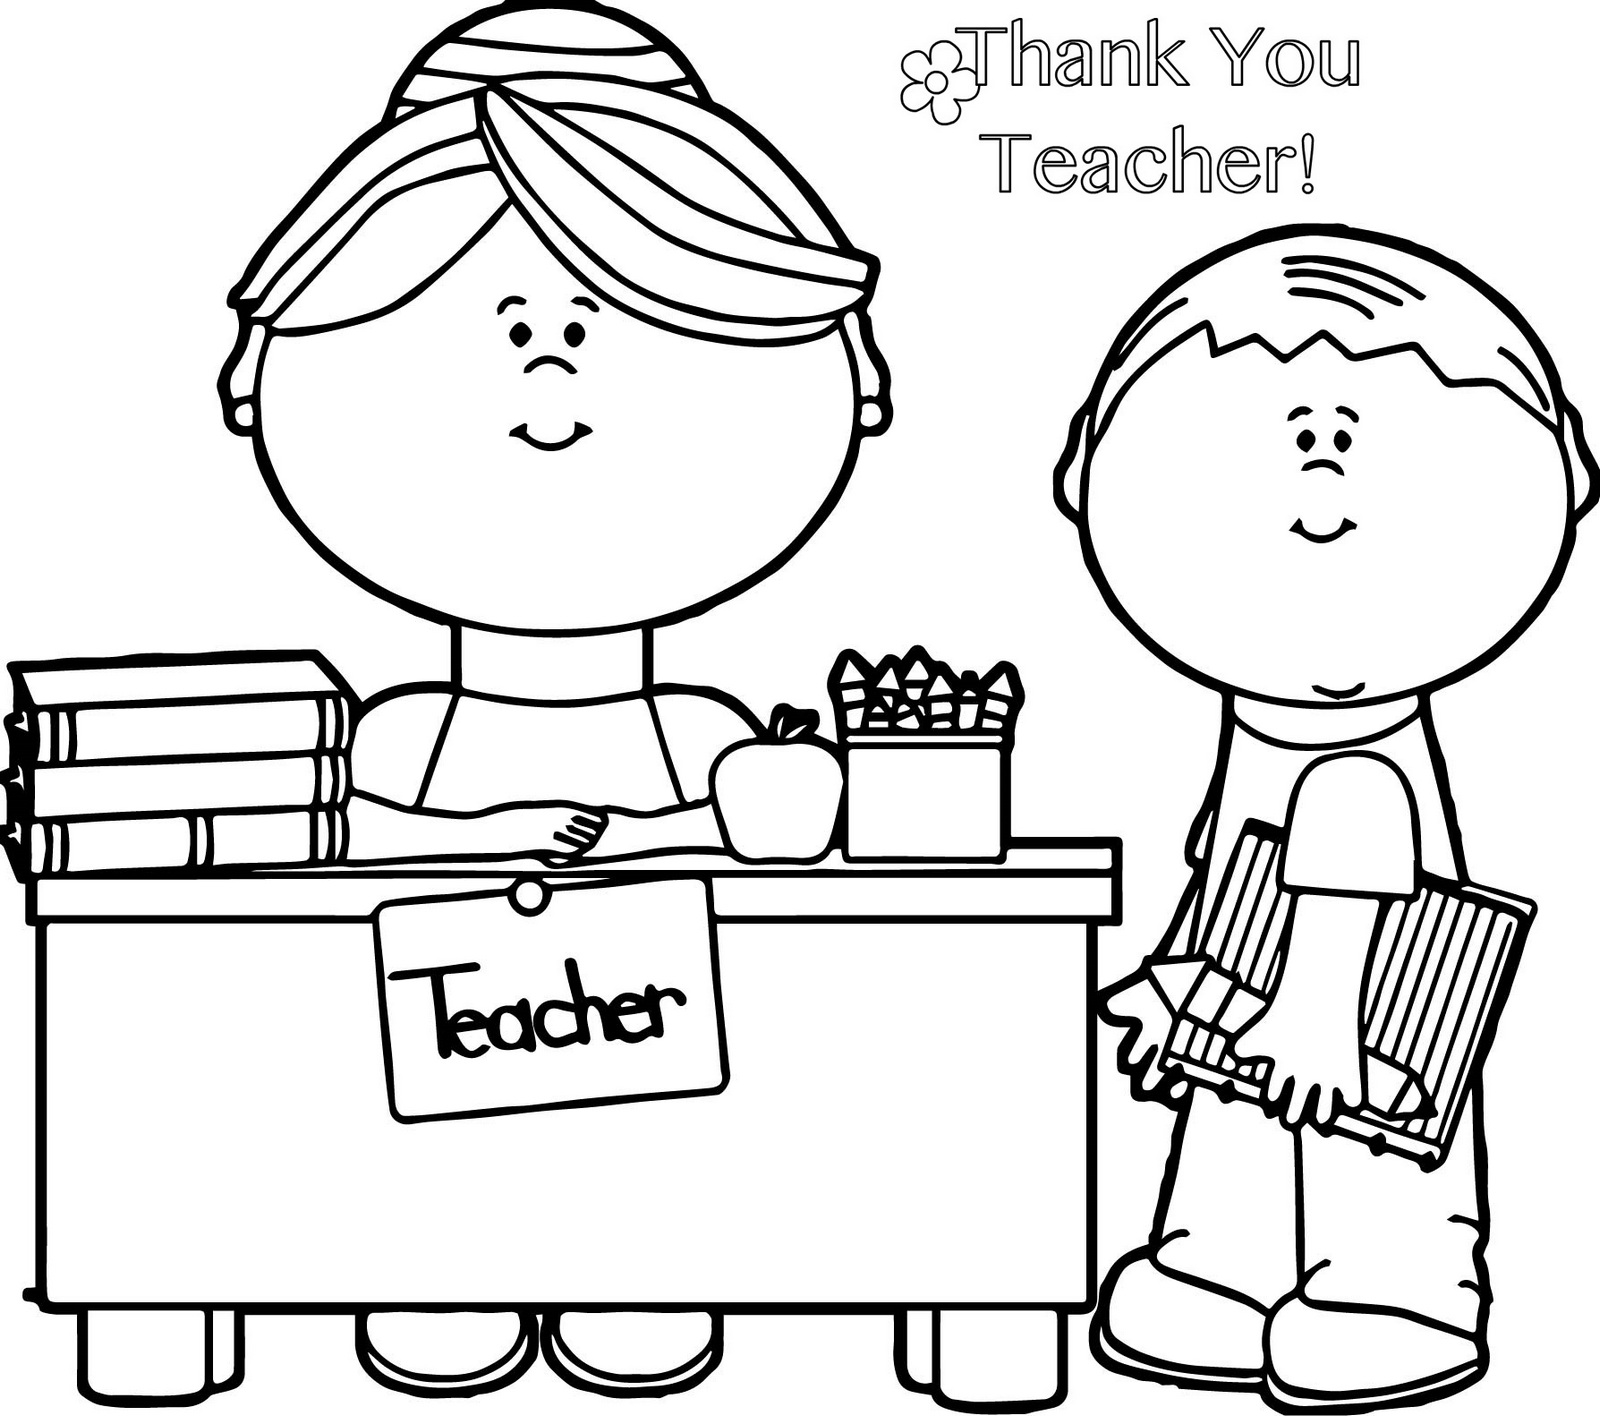 Thank You Teacher Coloring Page For Teacher Gifts